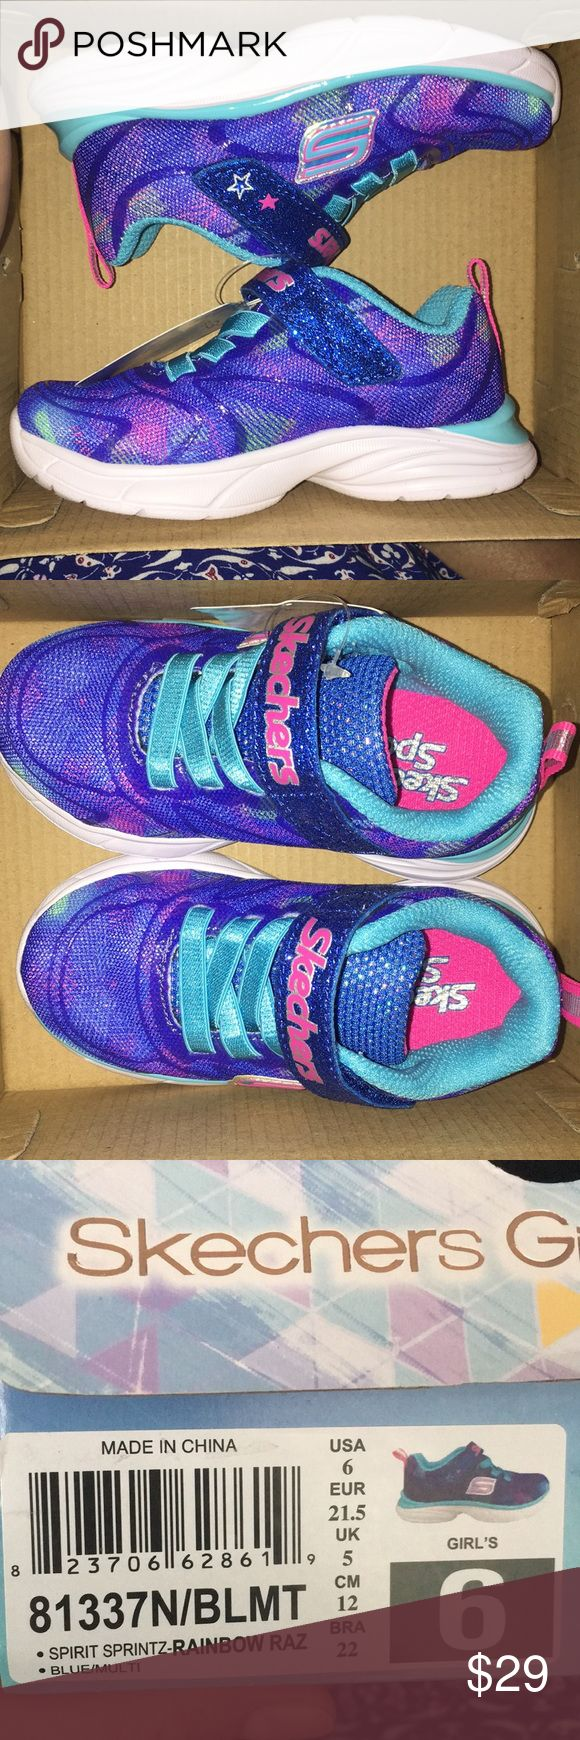 Skechers Girls shoes Brand new in box rainbow Raz little girls size 6 for about 18 months.velcro strap and elastic shoelaces.  Bundle up with my other children's clothes, women's clothes and save on shipping. Skechers Shoes Sneakers